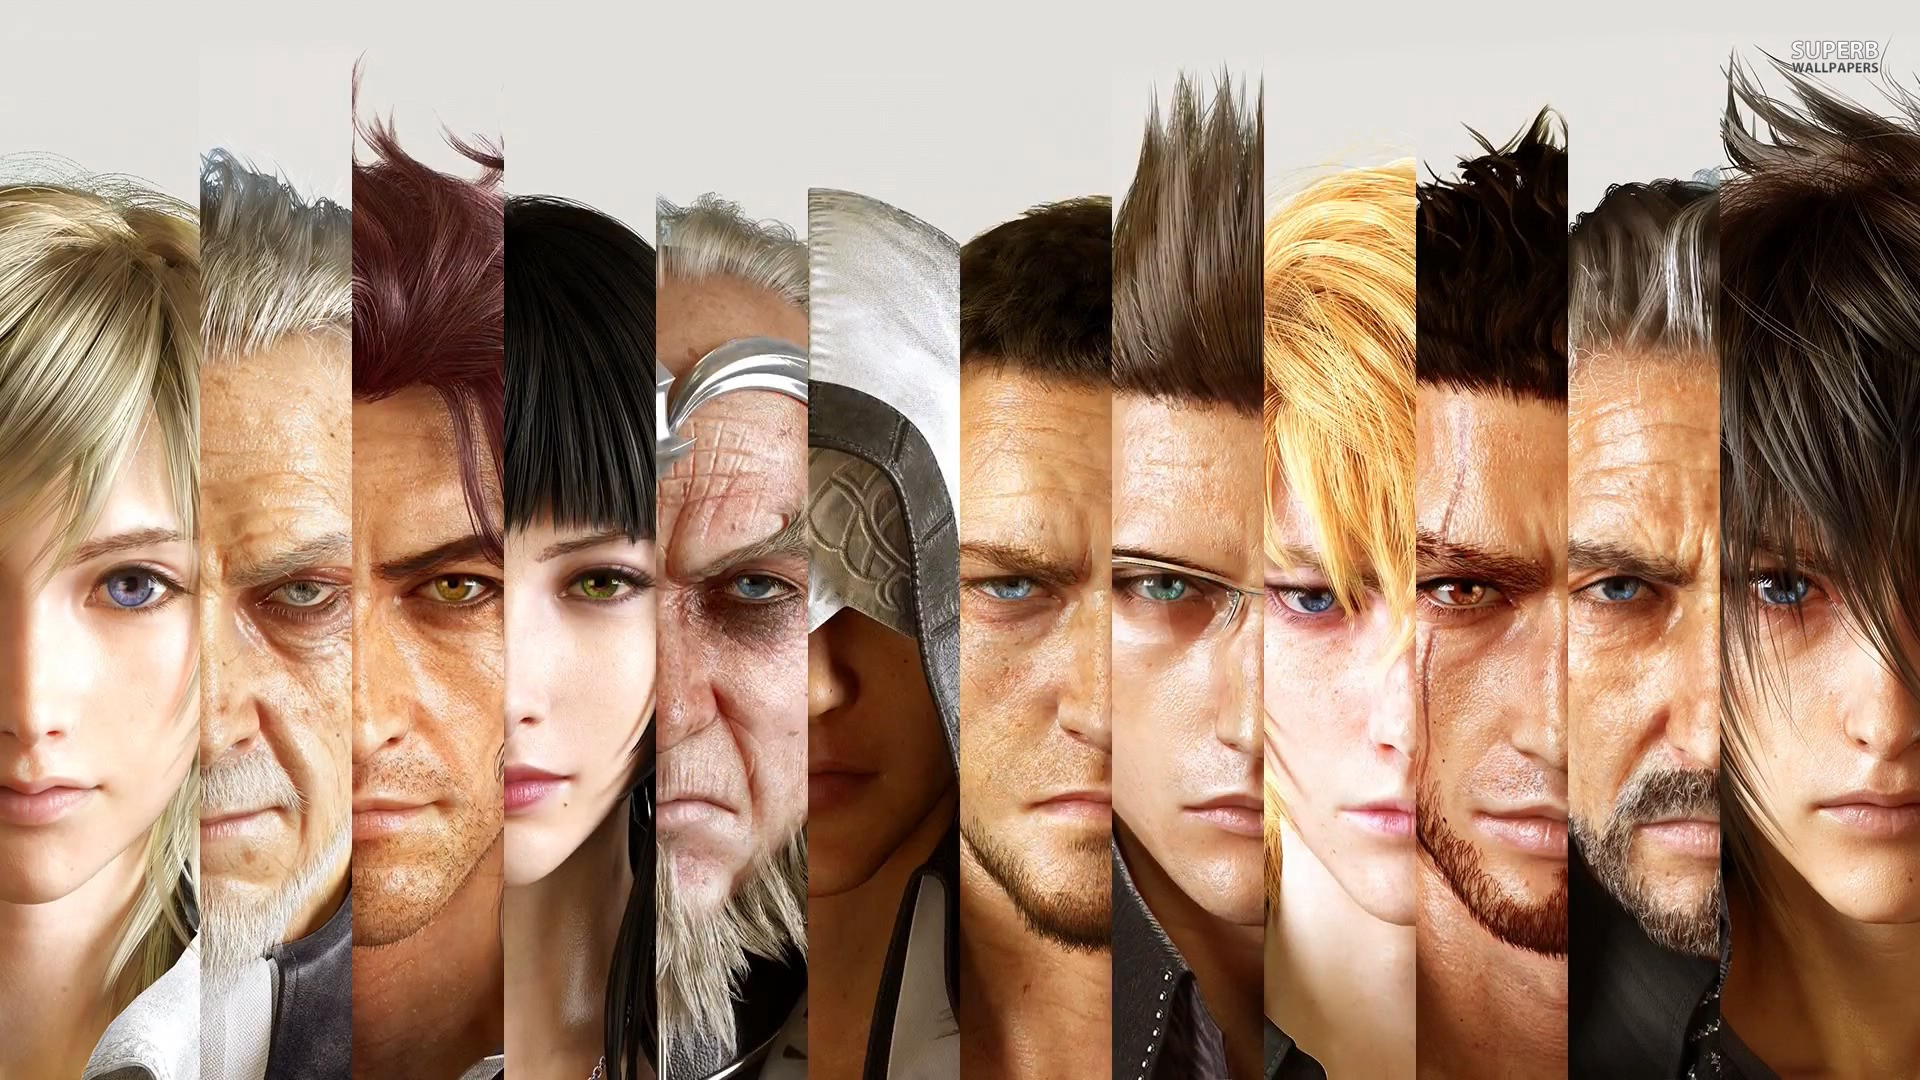 Credit Wallalphacoders By Sub Categoryphpid210667nameFinal Fantasy XV Wallpapers